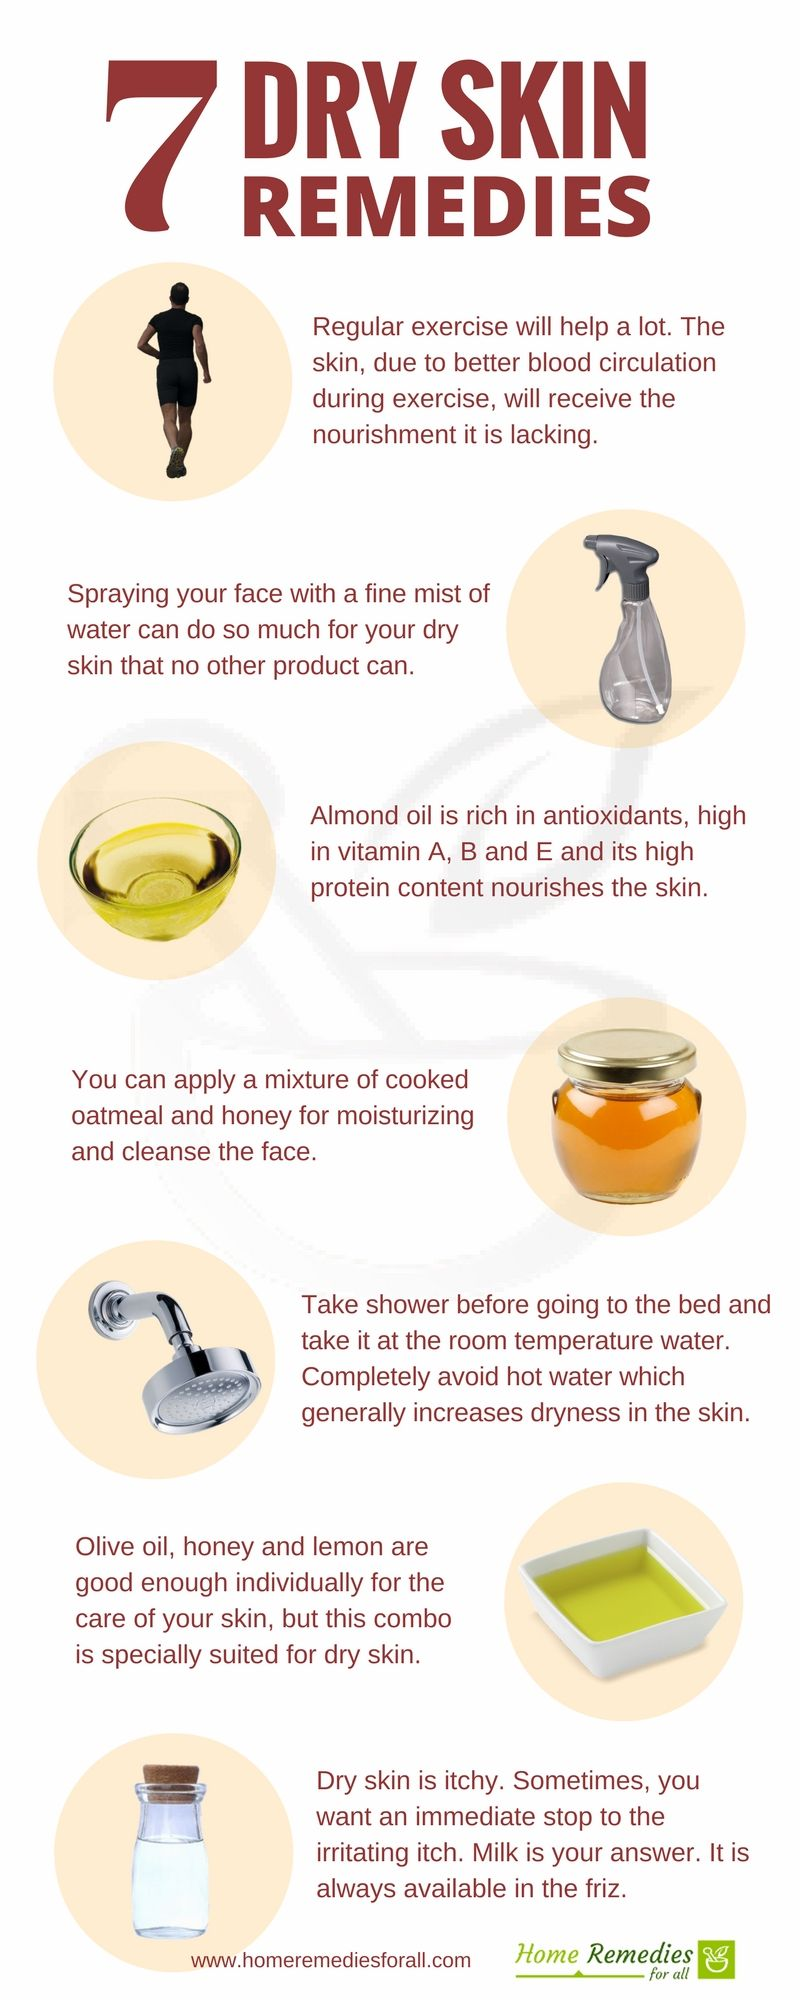 Use These Effective Home Remedies For Dry Skin To Make Your Skin Smooth And Glowing Bleiche Haut Trockene Haut Hautpflegeprodukte